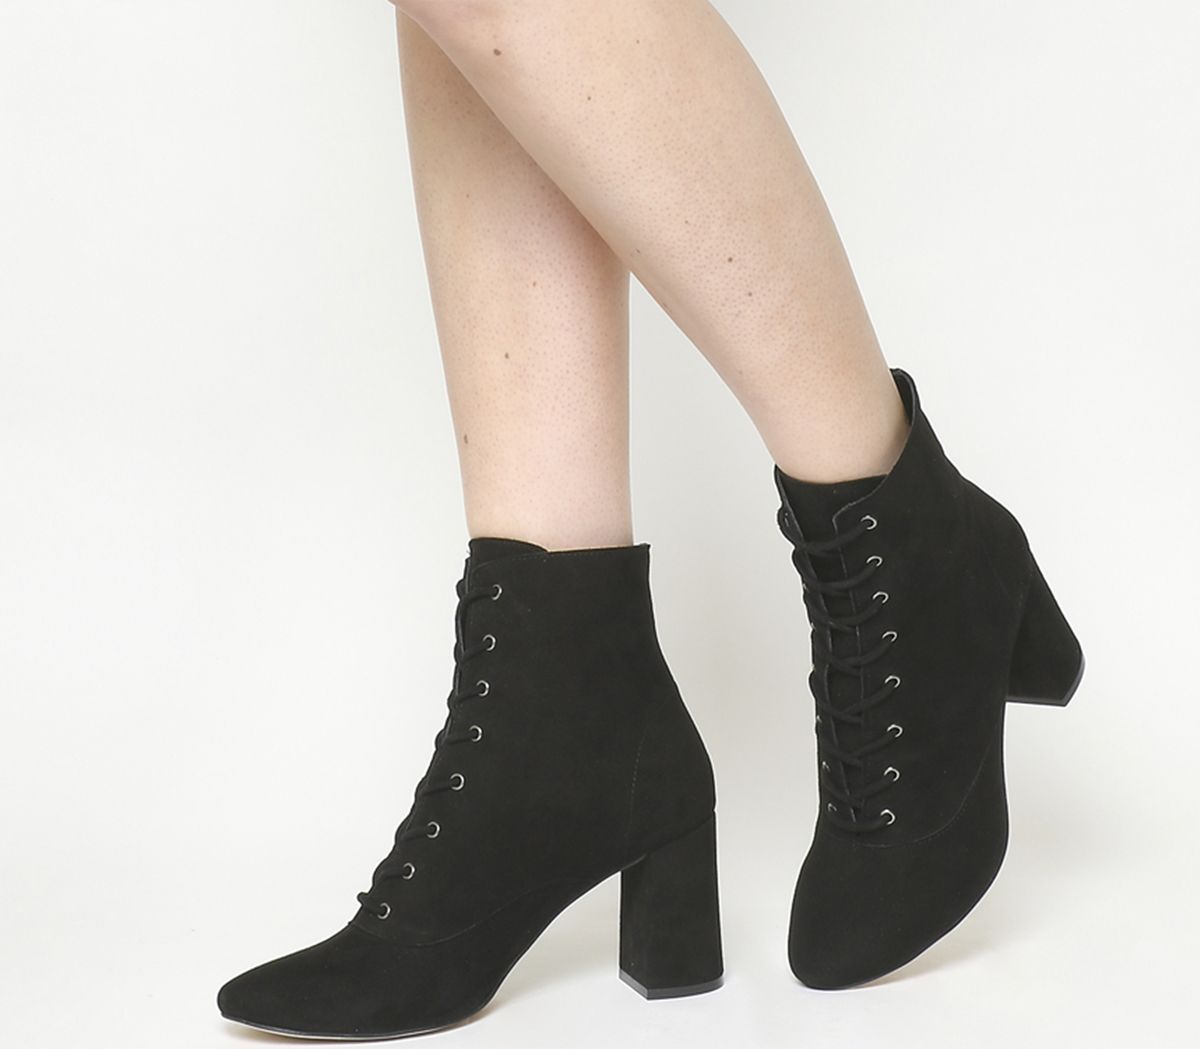 212e2a9bce3f8 Sentinel Womens Office Black Suede Lace Up Ankle Boots Size UK 7  Ex-Display